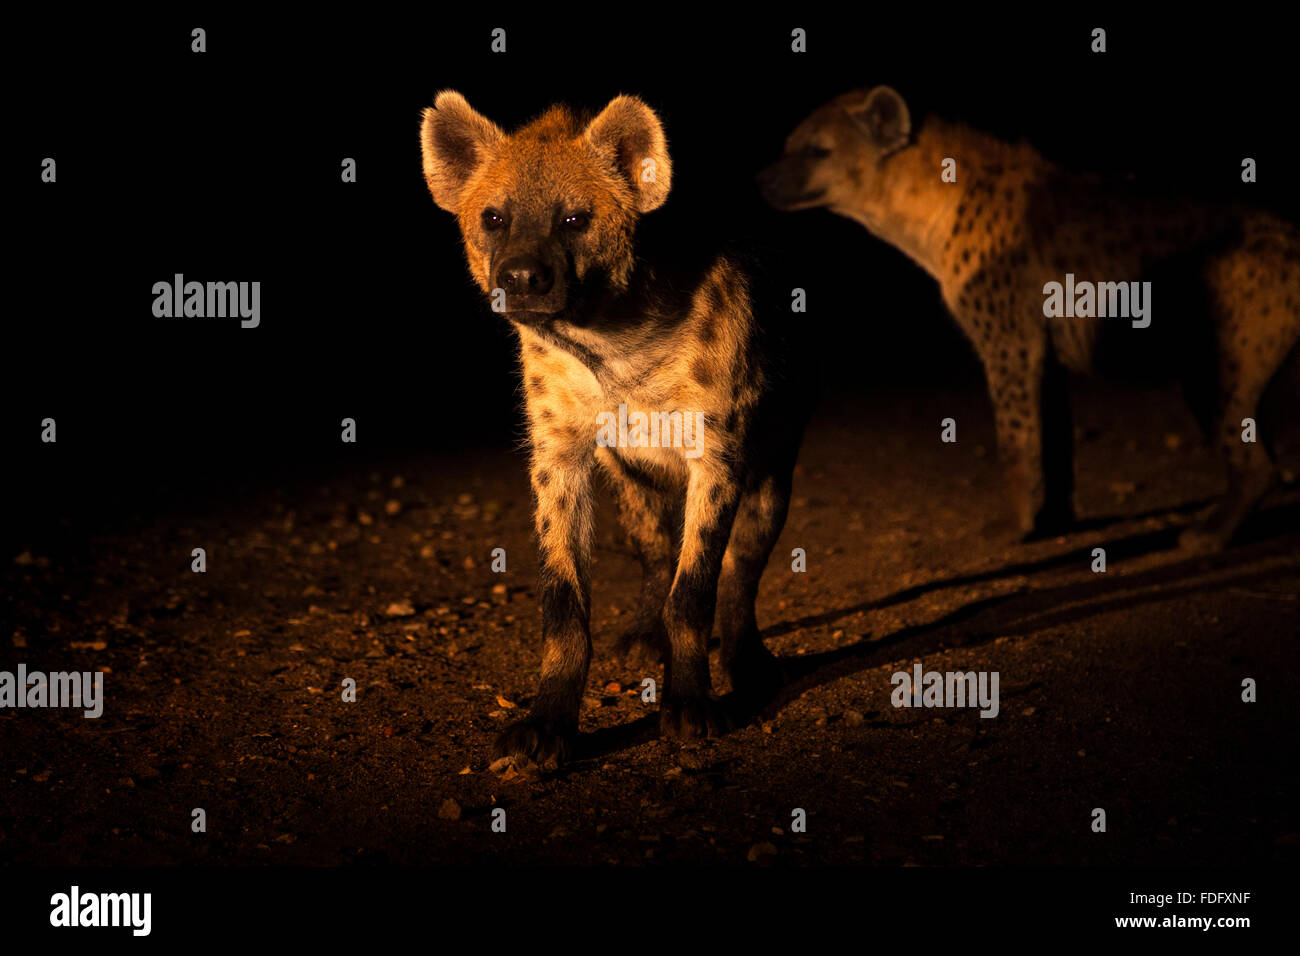 Two spotted hyenas at night, Harar, Ethiopia. - Stock Image